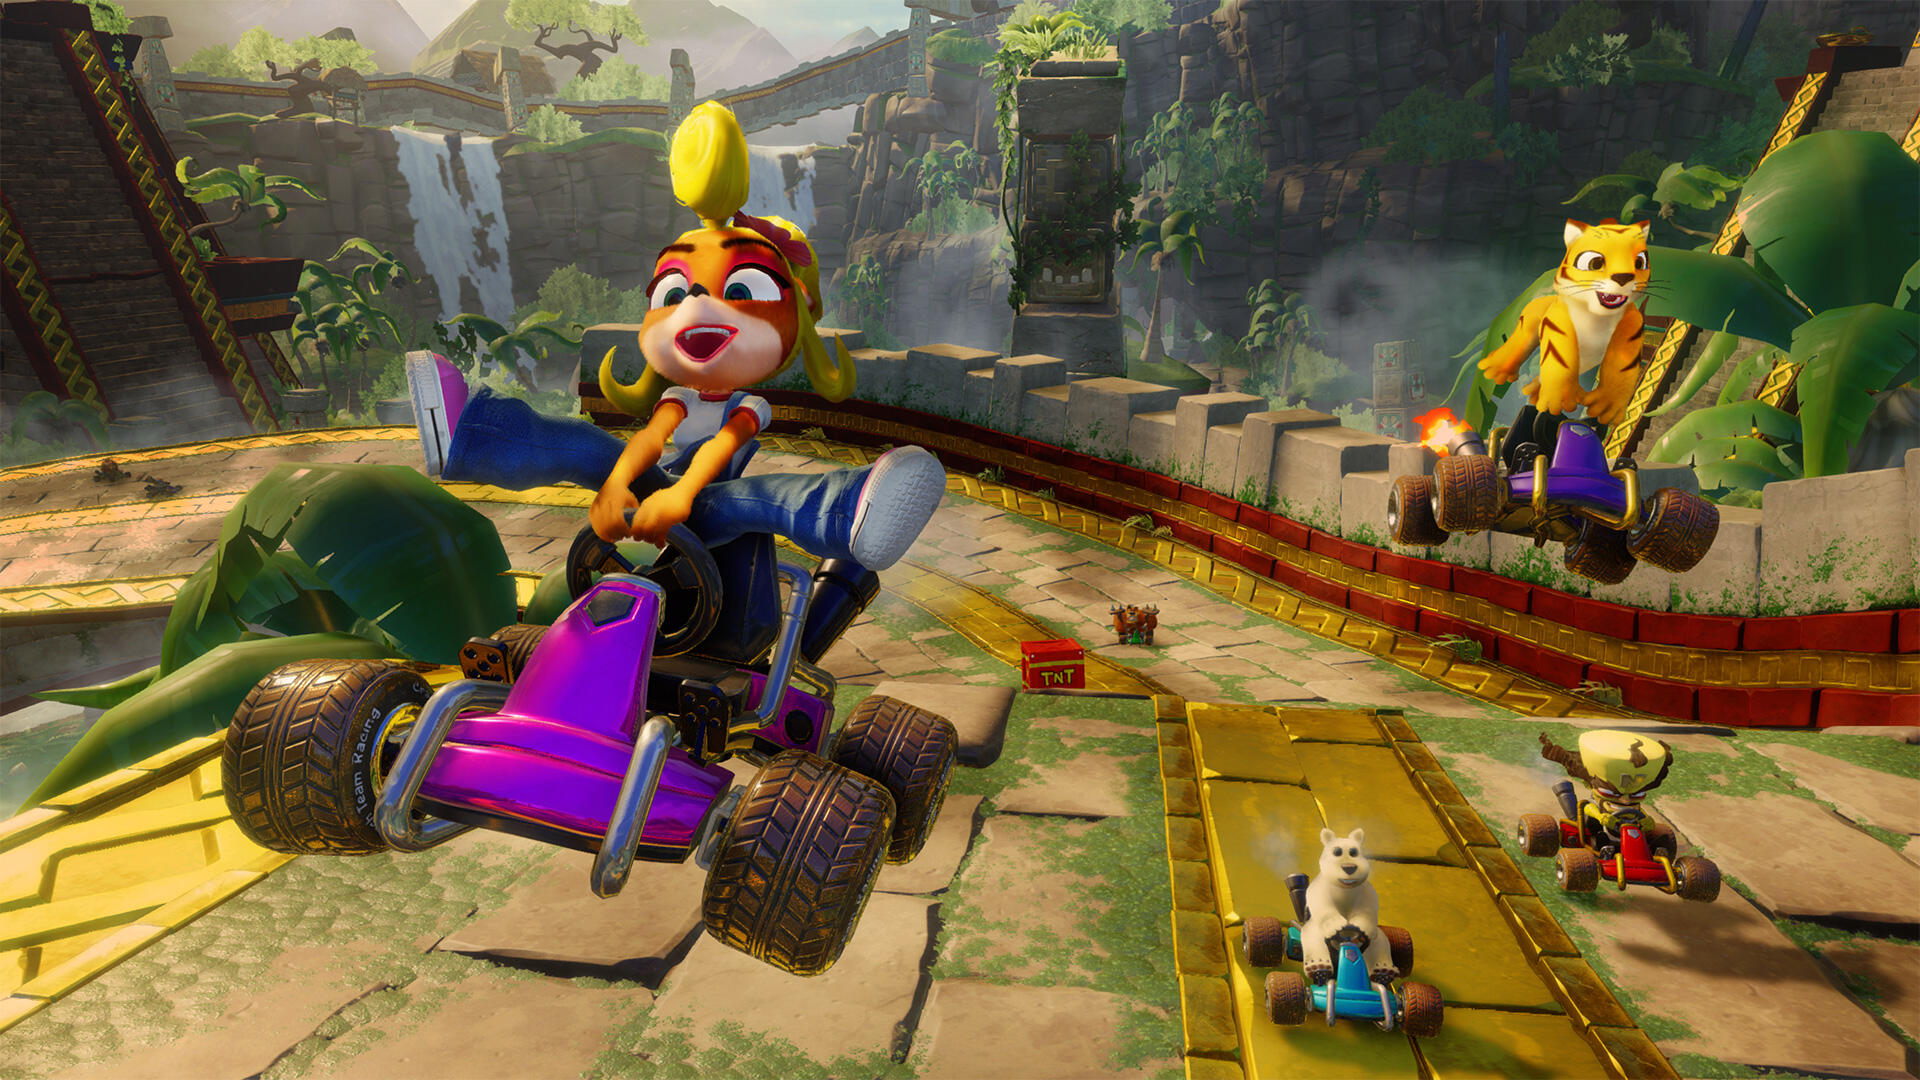 Crash Team Racing Nitro Fuelled: Mystery Caves CTR Locations